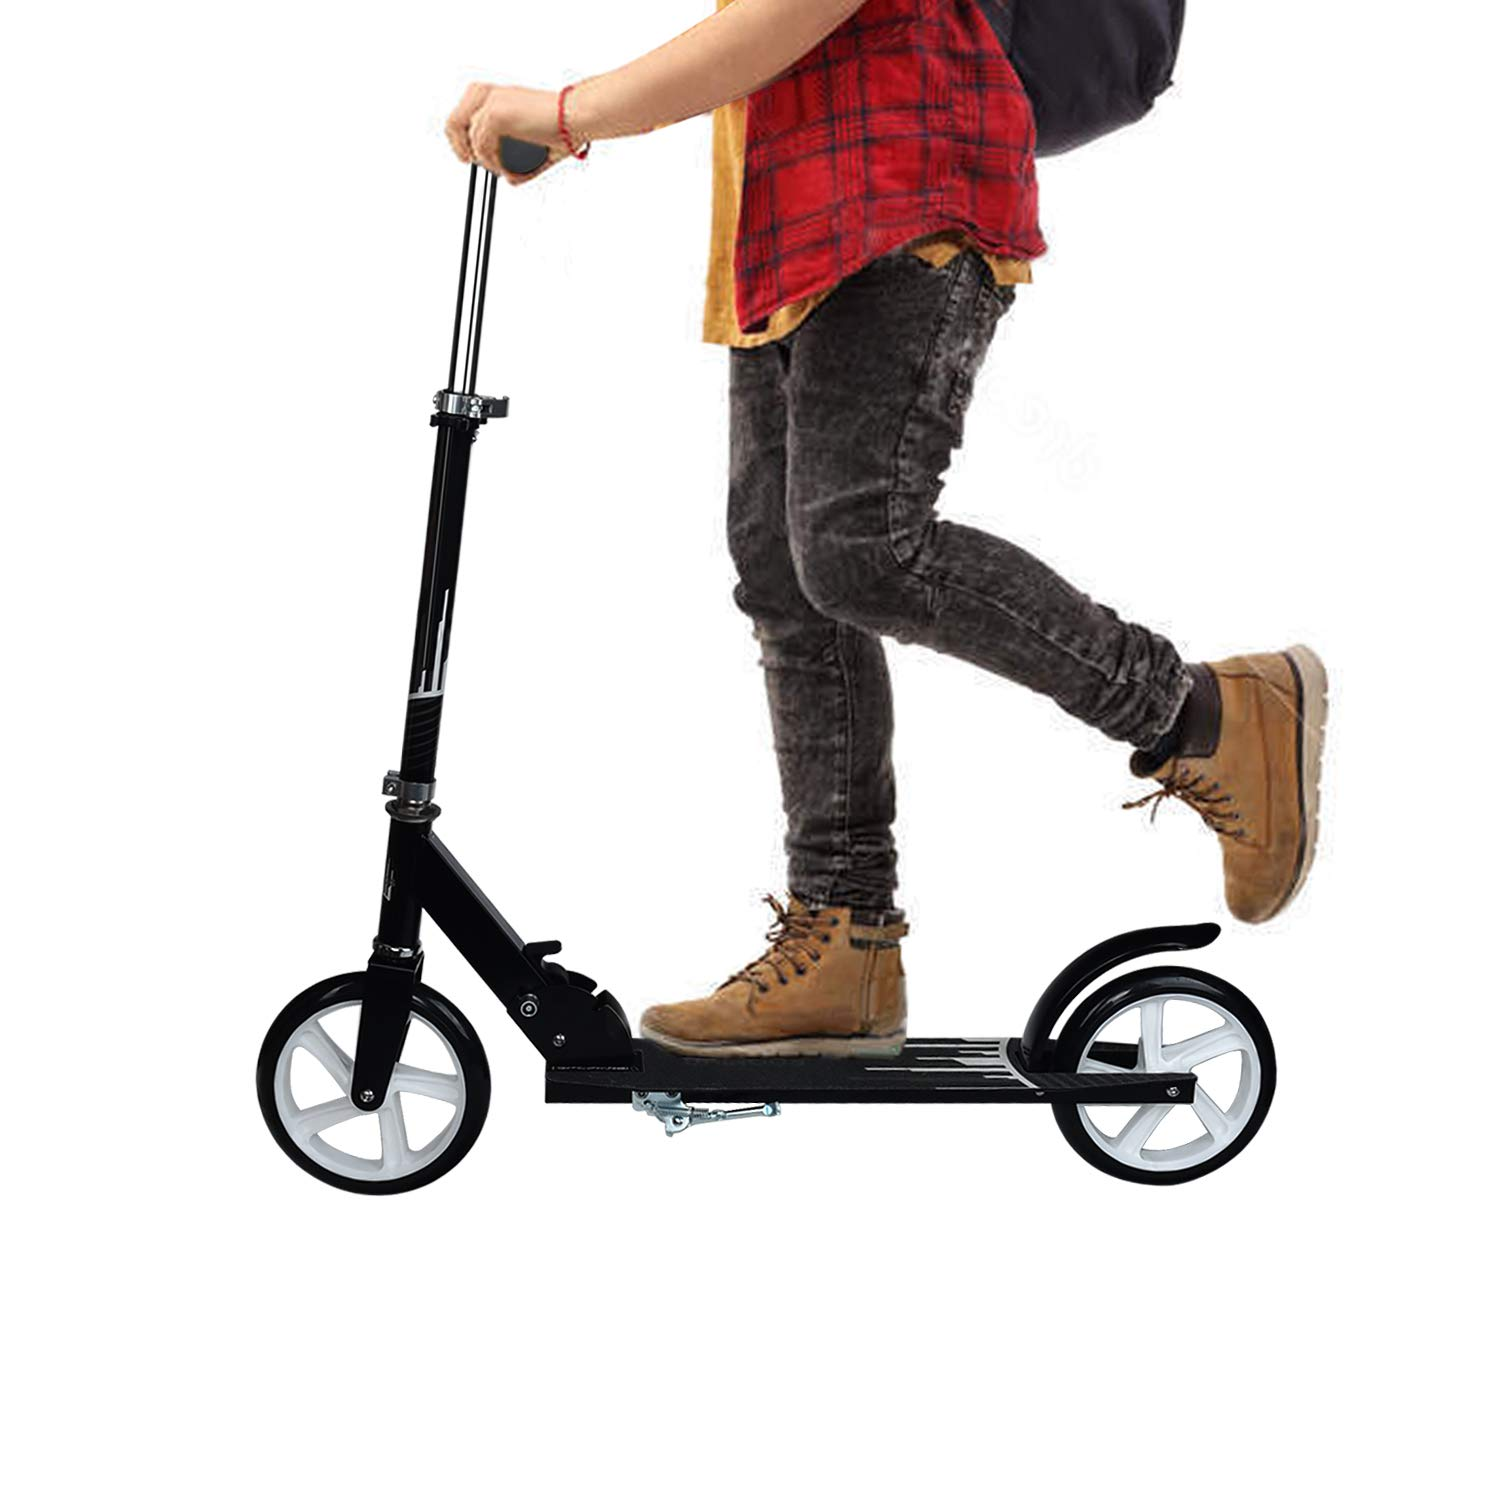 UHINOOS Adults Kick Scooter with Easy Folding System Adults Kick Scooter with Big Wheels Teenager Scooters with Steel Handle Bar